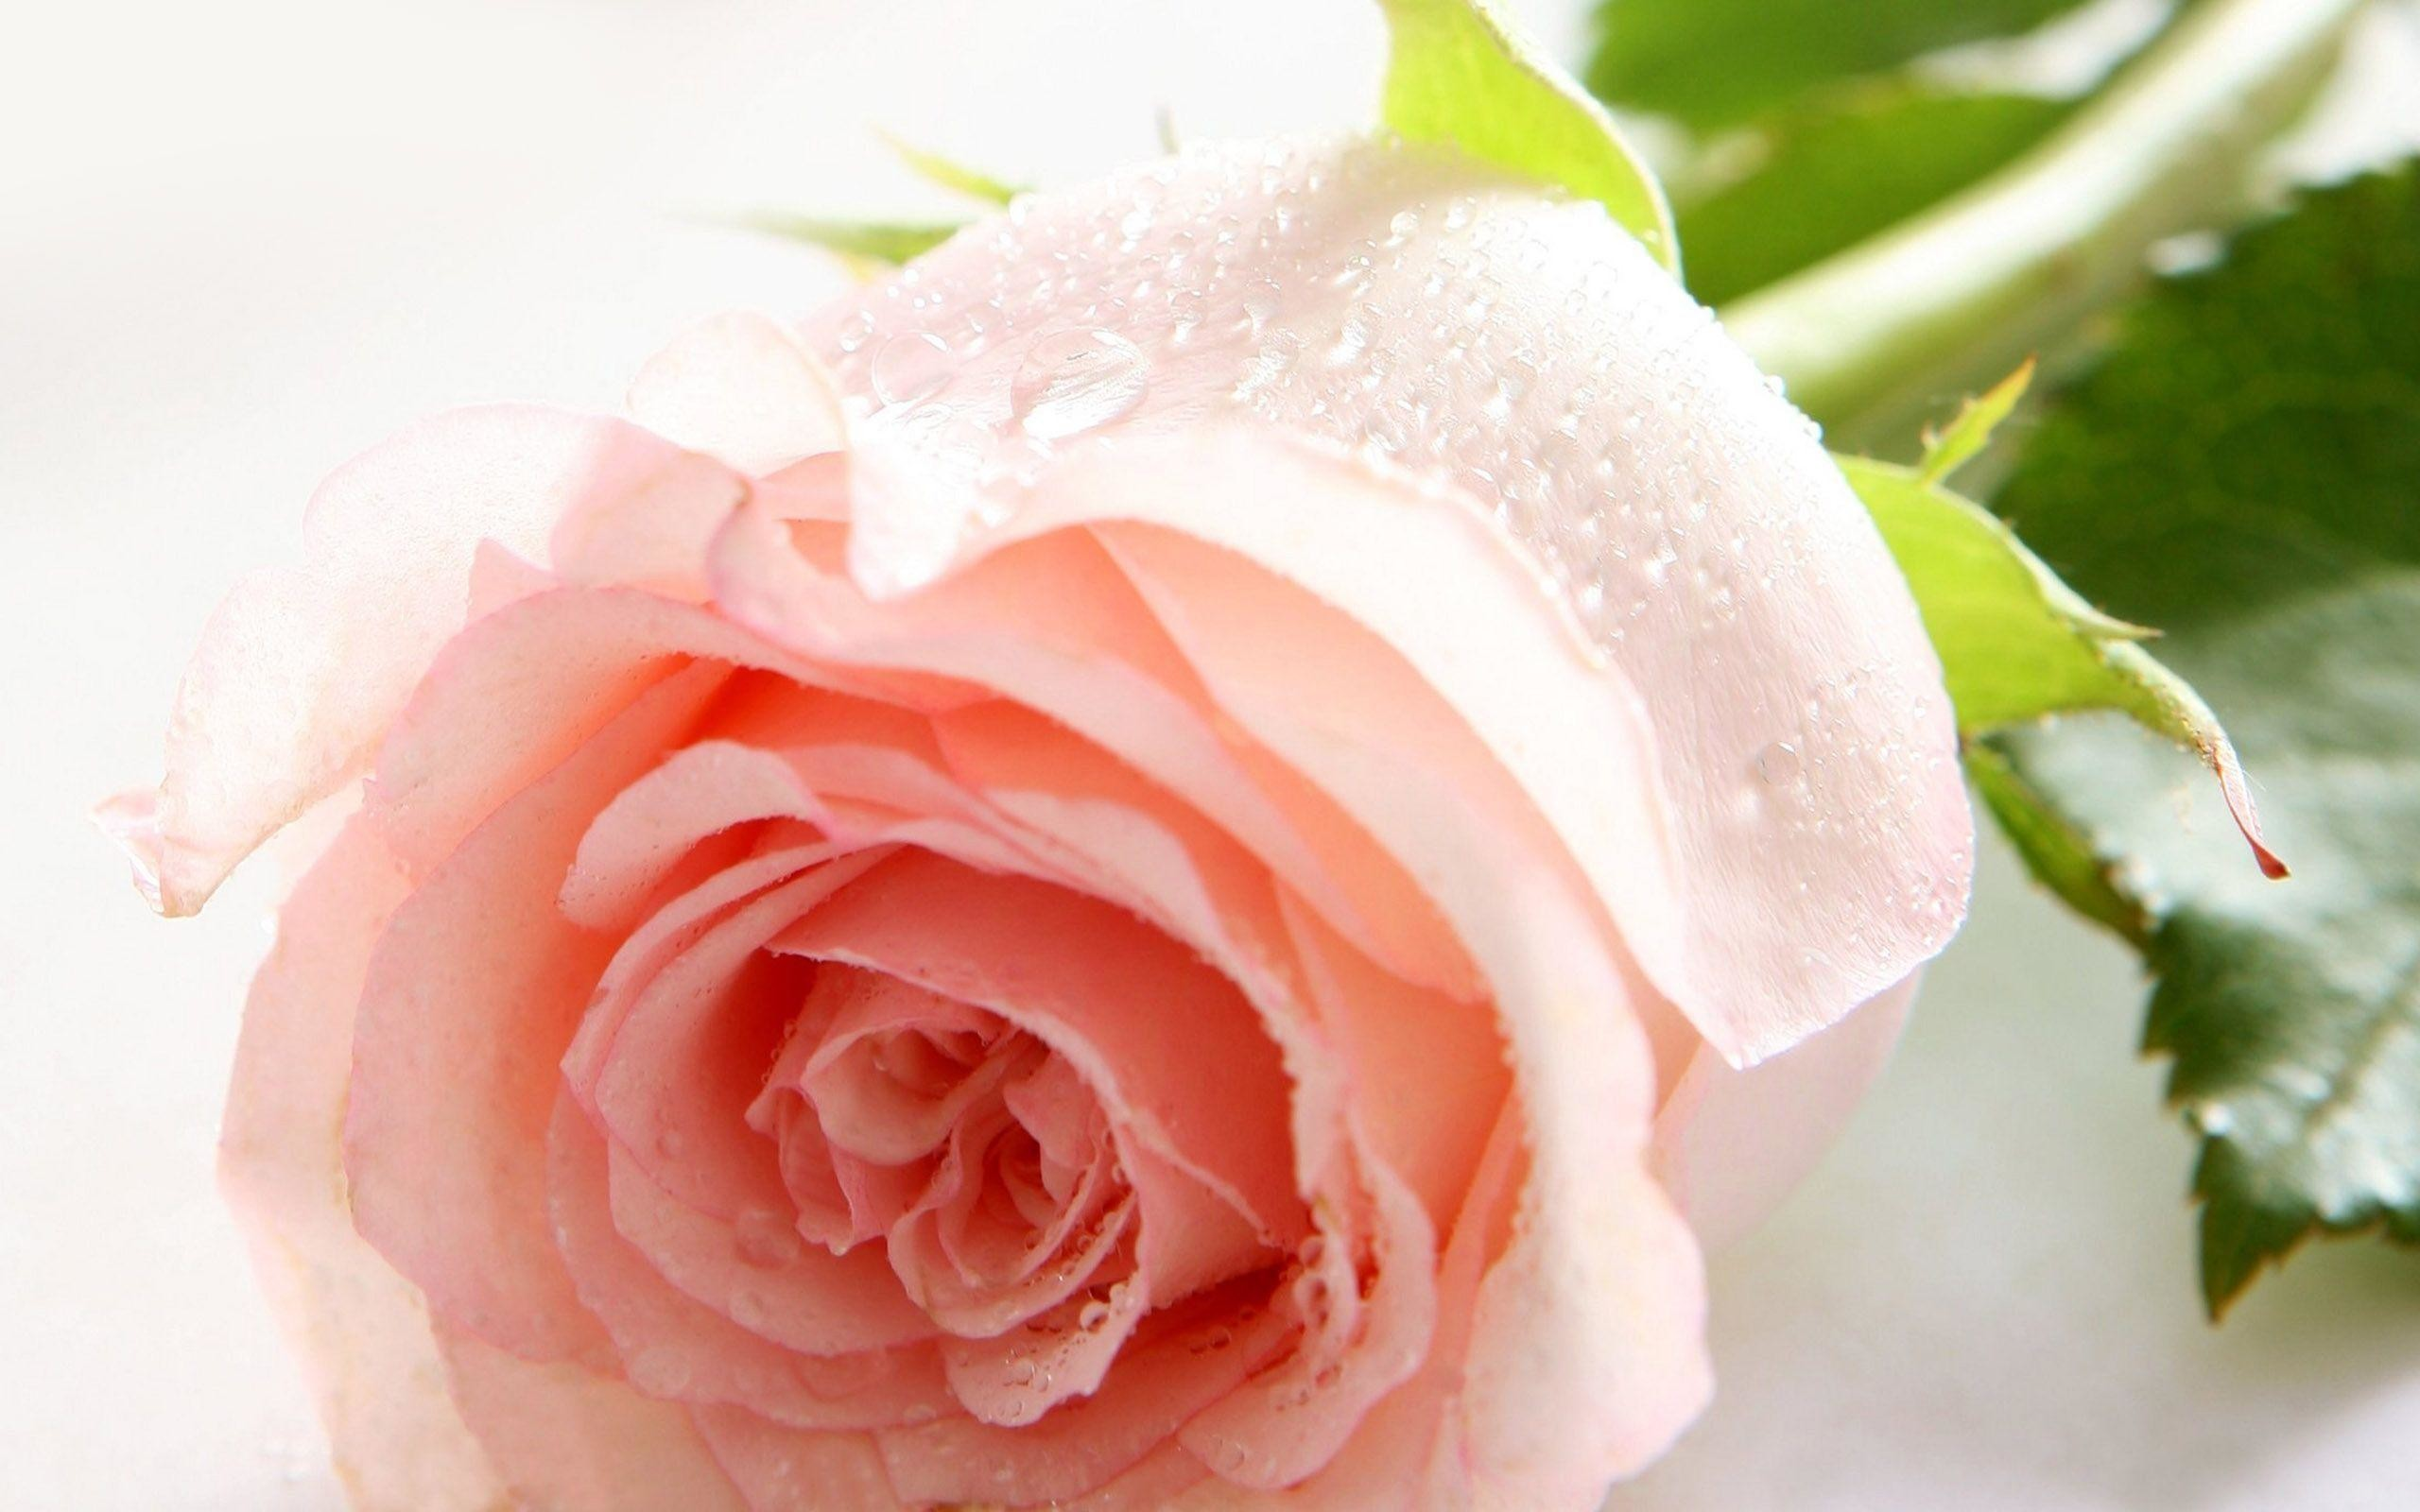 2560x1600 Wallpapers For > Natural Rose Flower Wallpaper